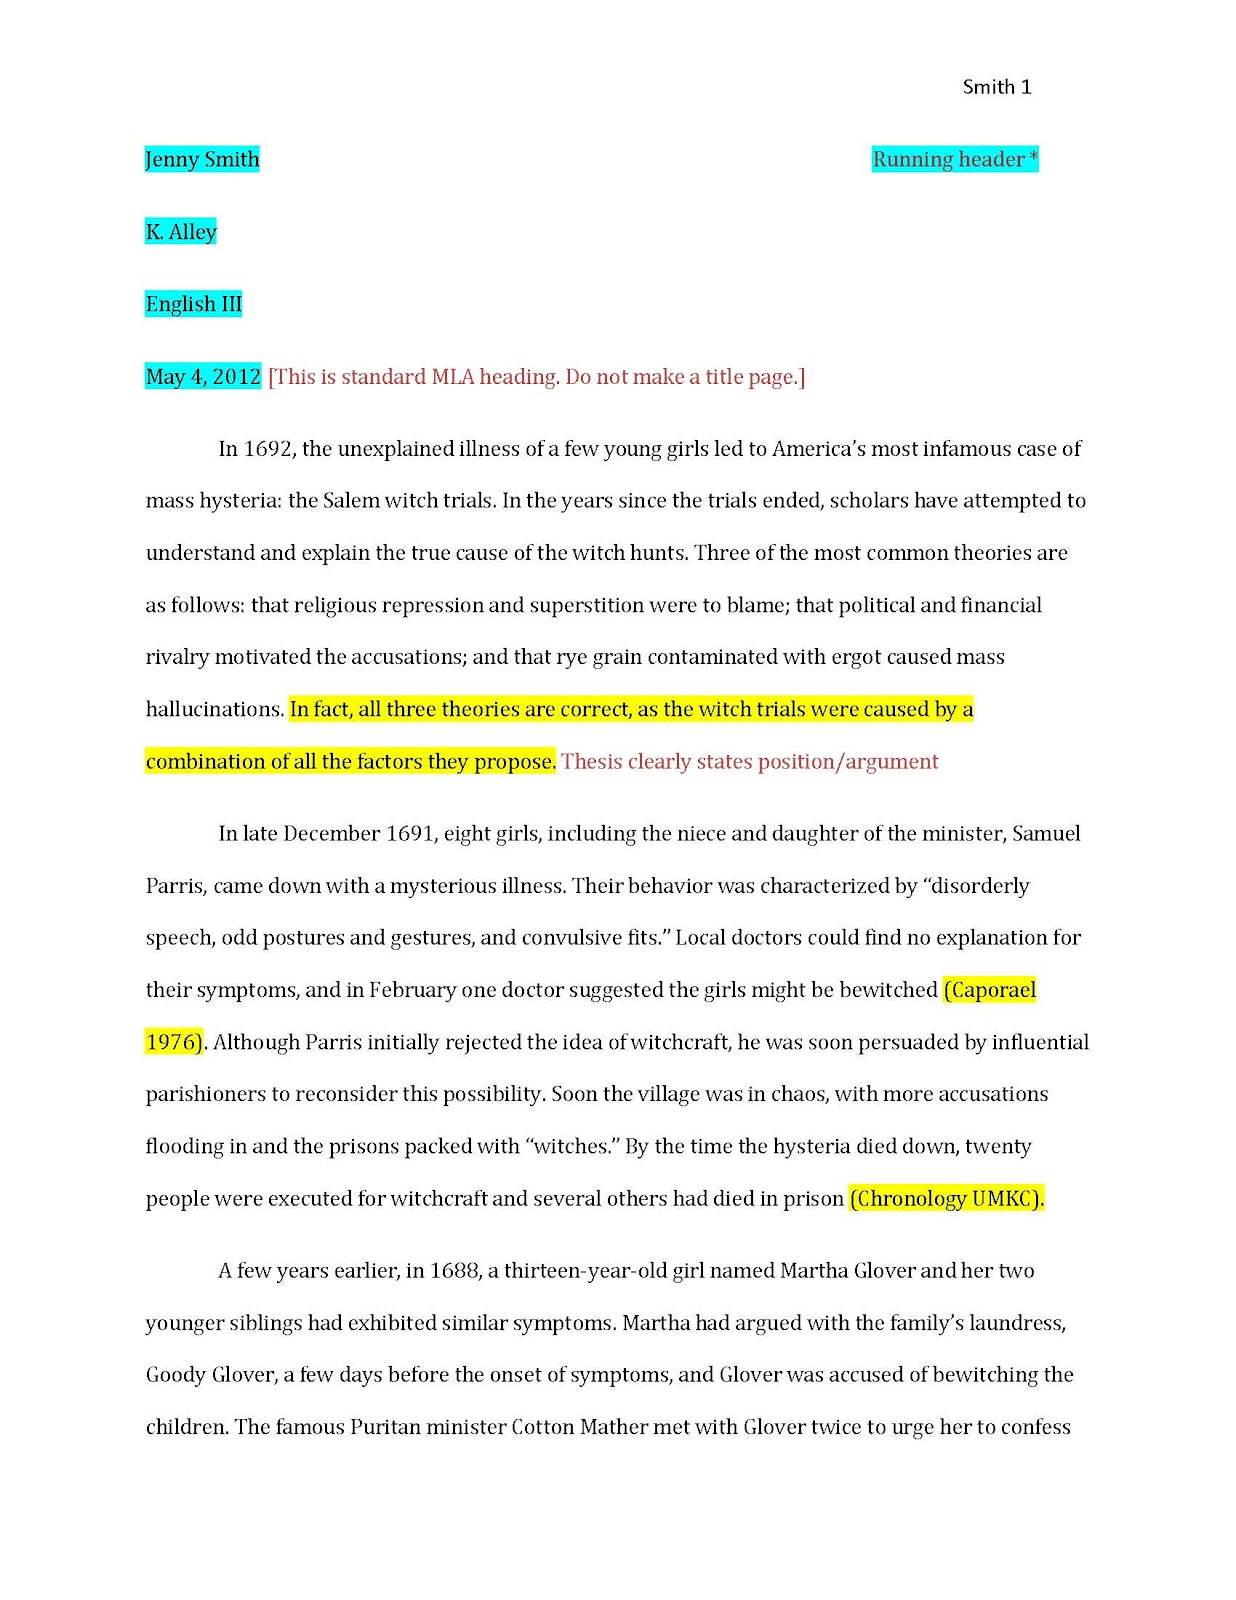 018 Cite Research Paper Generator Examplepaper Page 1 Top Chicago Style A Harvard Online Full